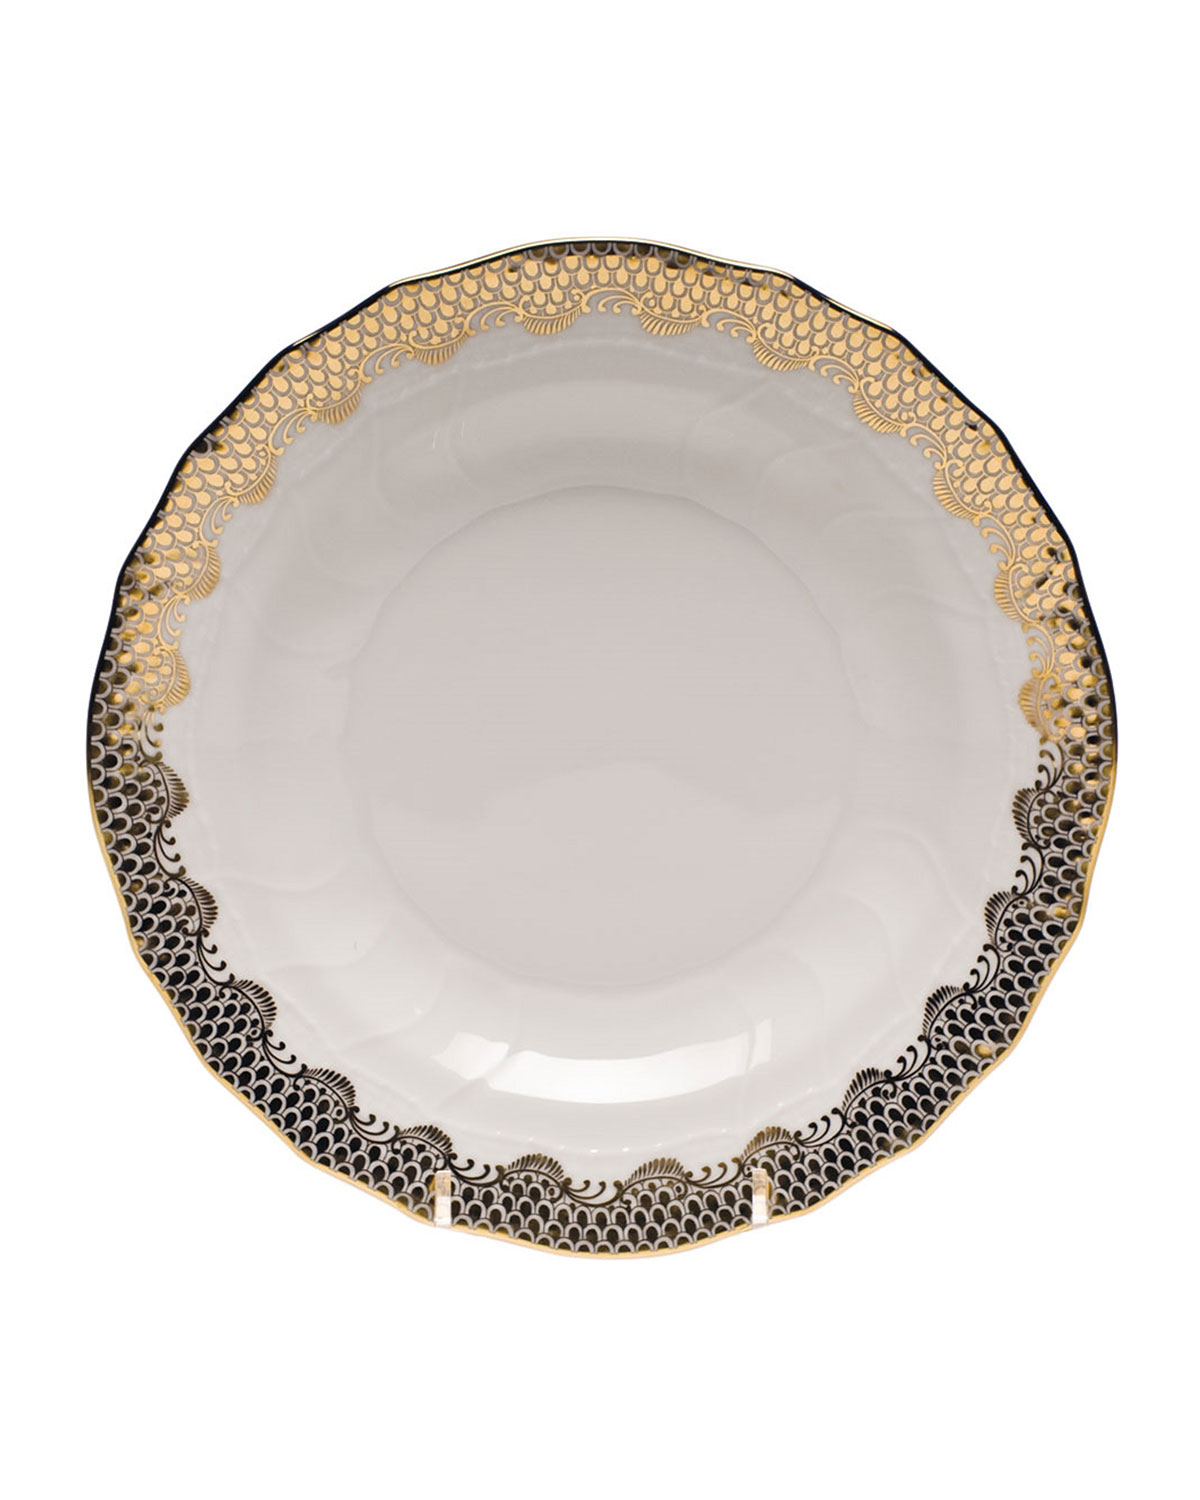 Herend GOLD FISH SCALE DESSERT PLATE